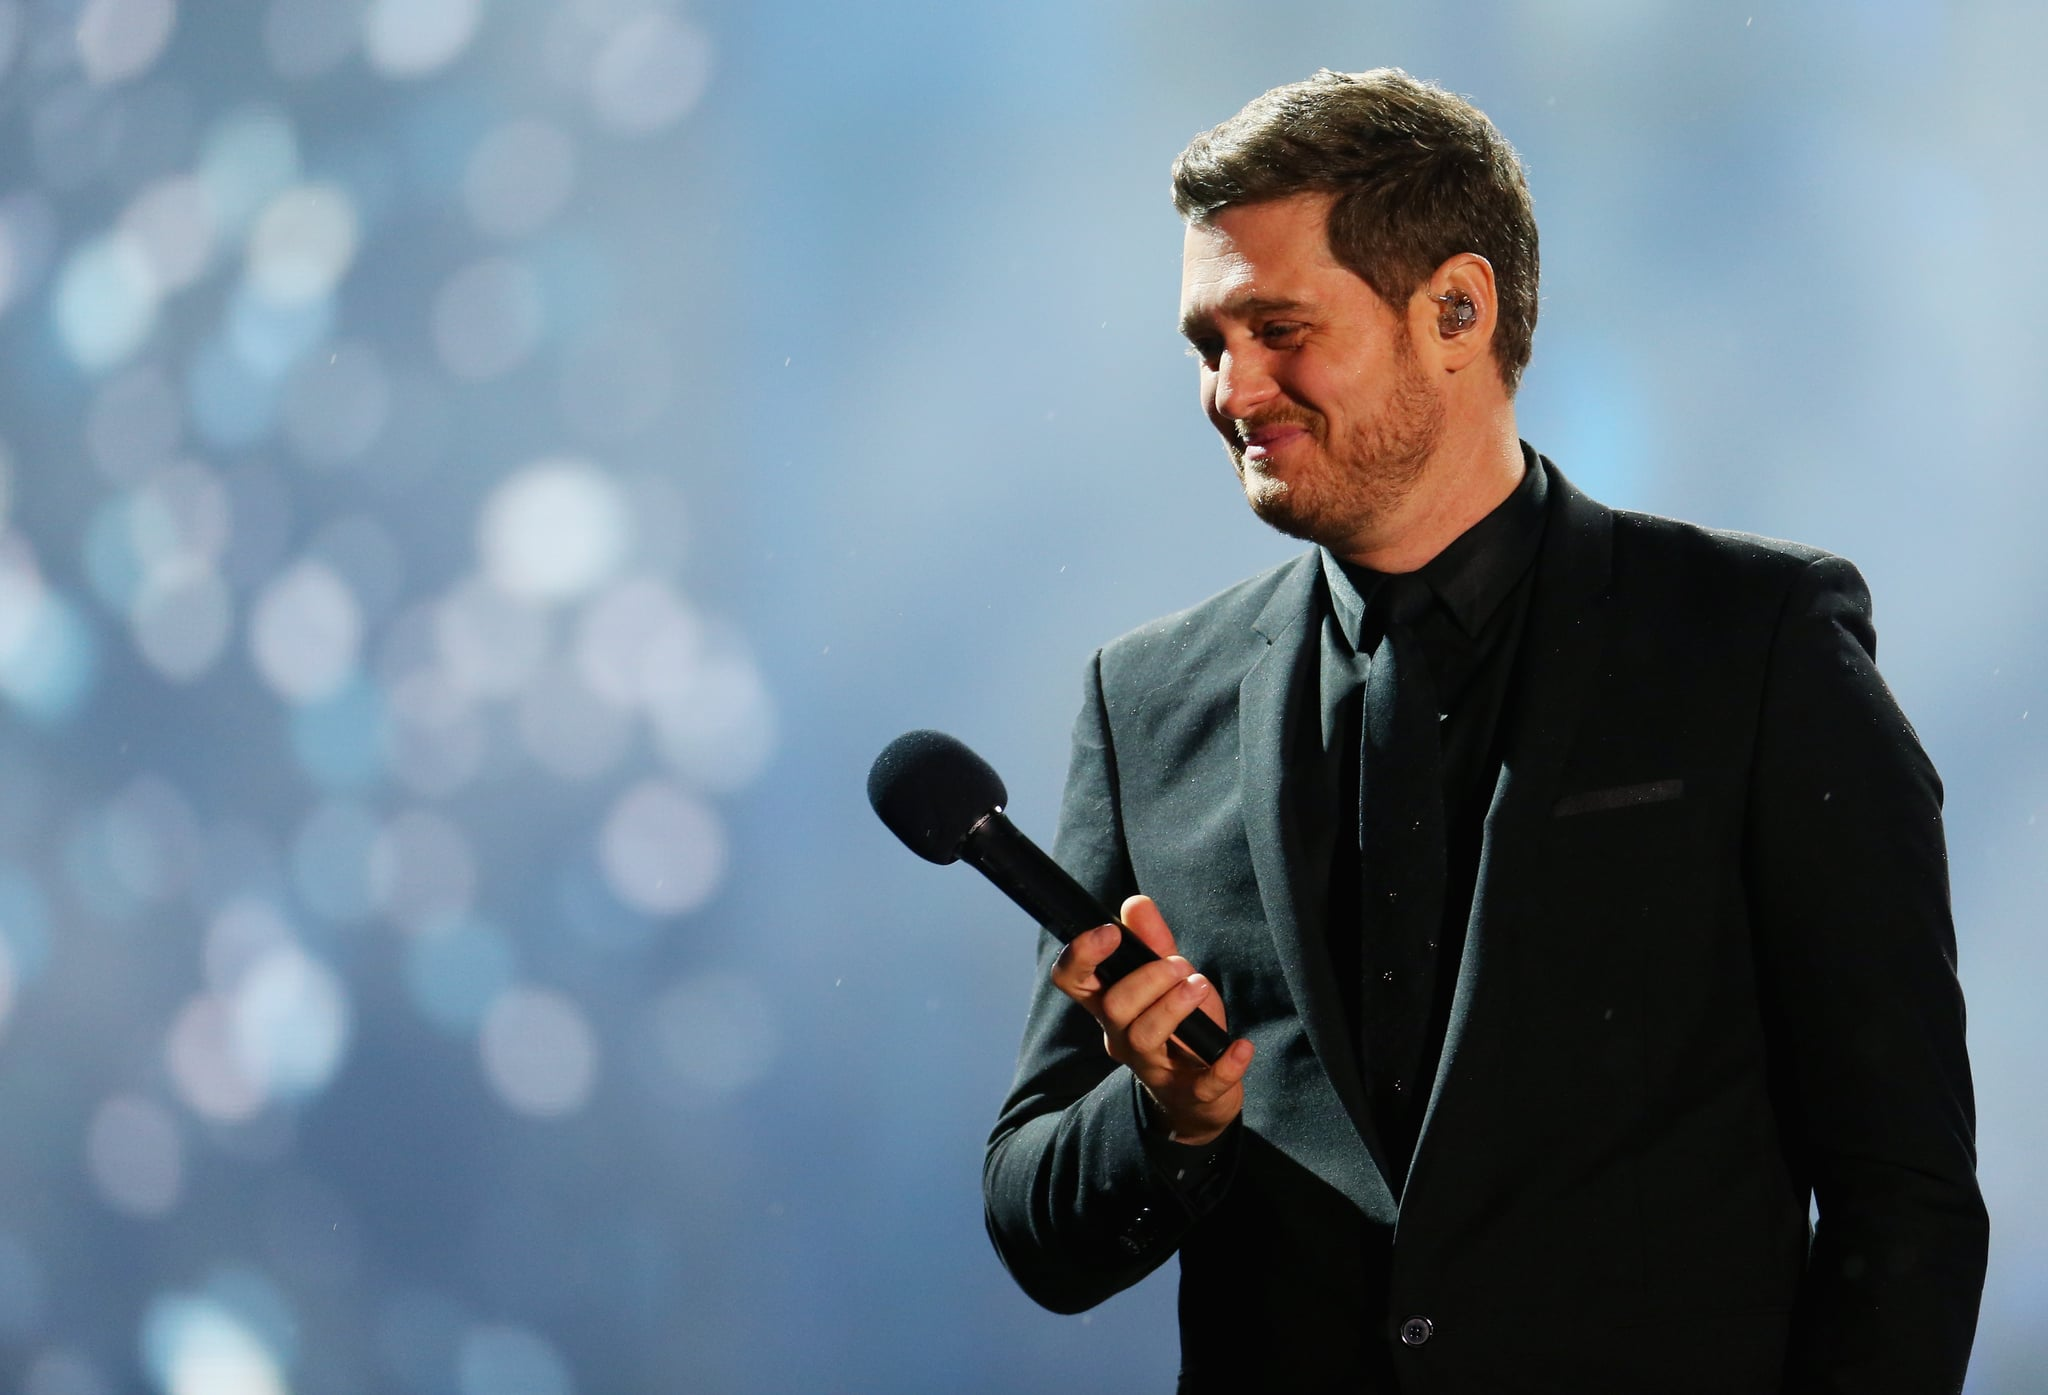 SYDNEY, AUSTRALIA - OCTOBER 5: Michael Buble performs at the Allianz Stadium on October 5, 2018 in Sydney, Australia. (Photo by Don Arnold / WireImage)